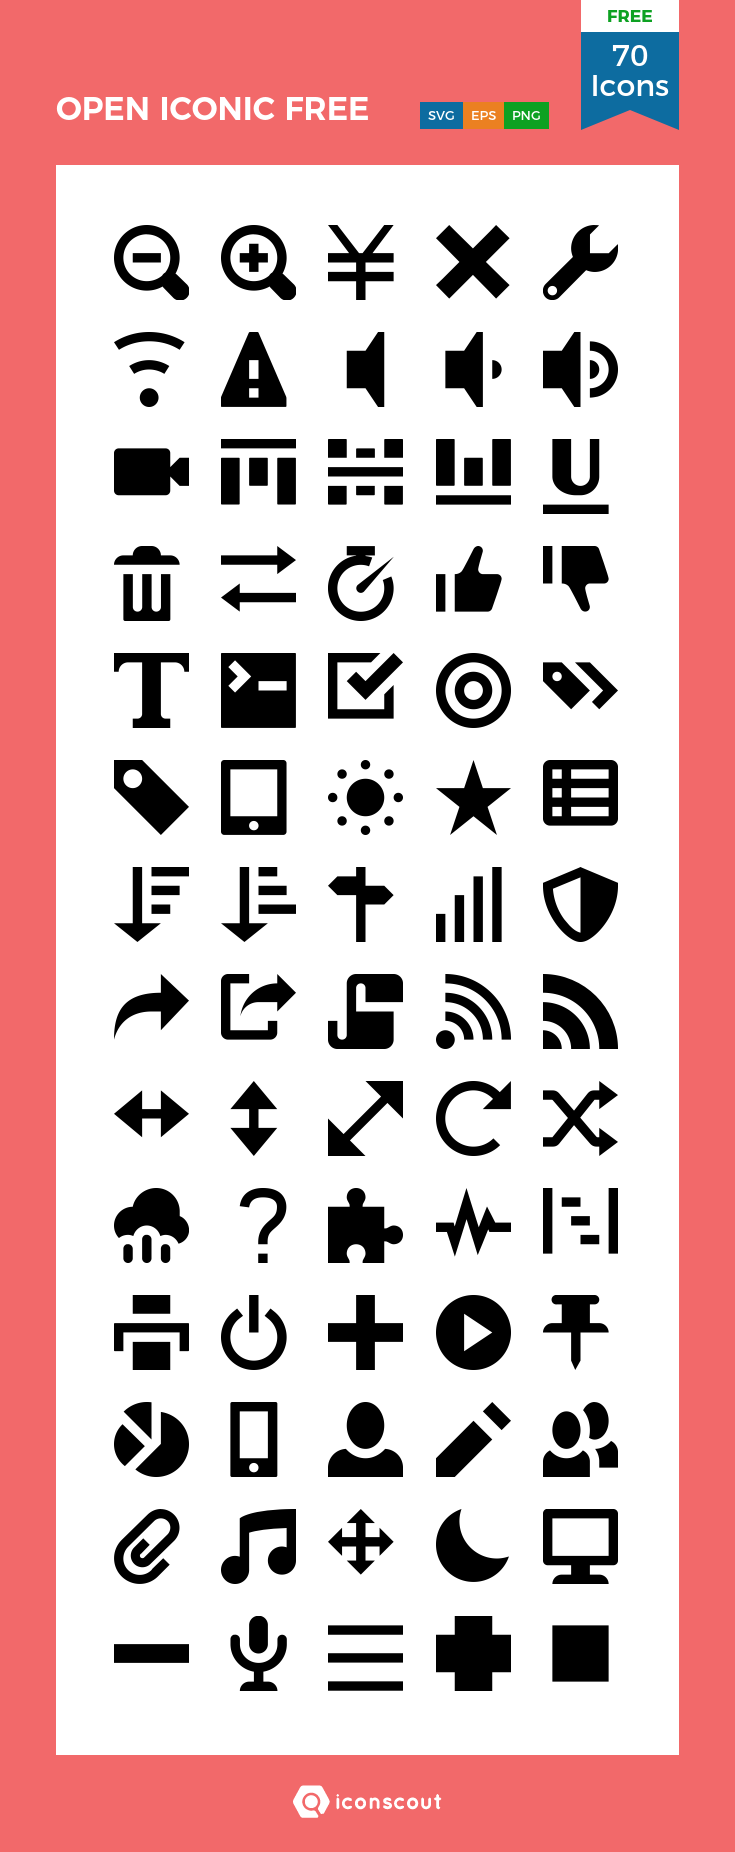 Download Download OPEN ICONIC FREE Icon pack - Available in SVG ...